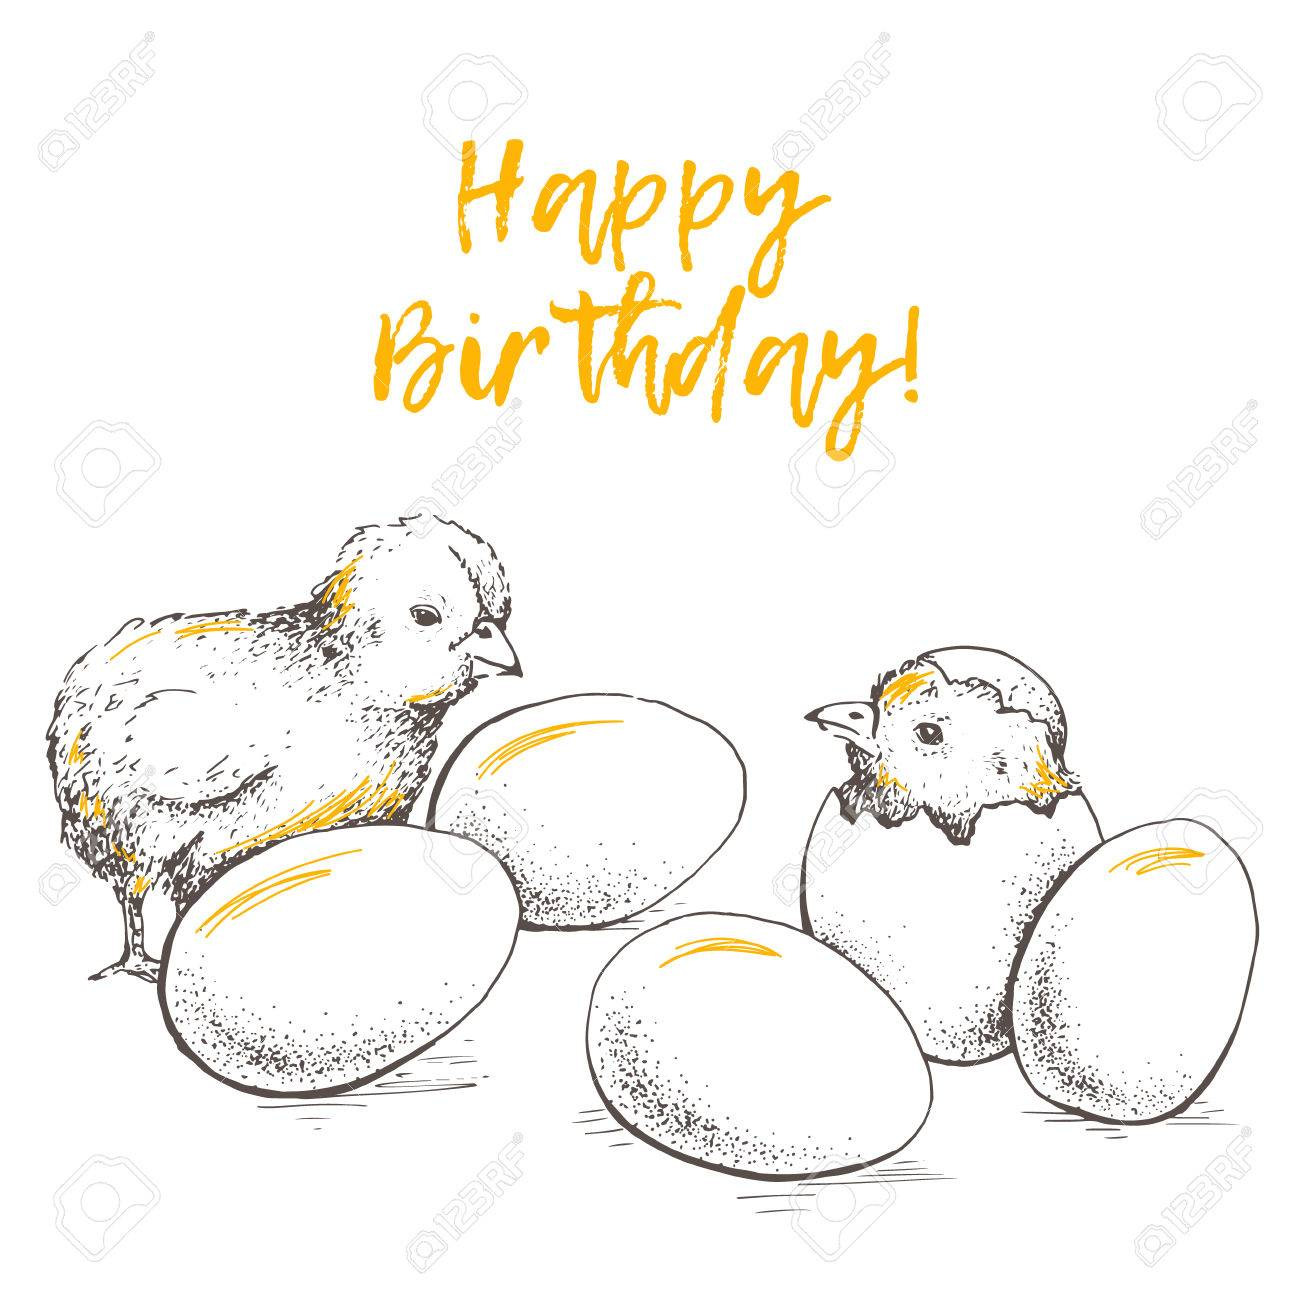 drawing of birthday greeting cards ; 68353137-greeting-card-of-chick-peeking-out-of-eggs-happy-birthday-sketch-illustration-graphics-handmade-draw-Stock-Photo